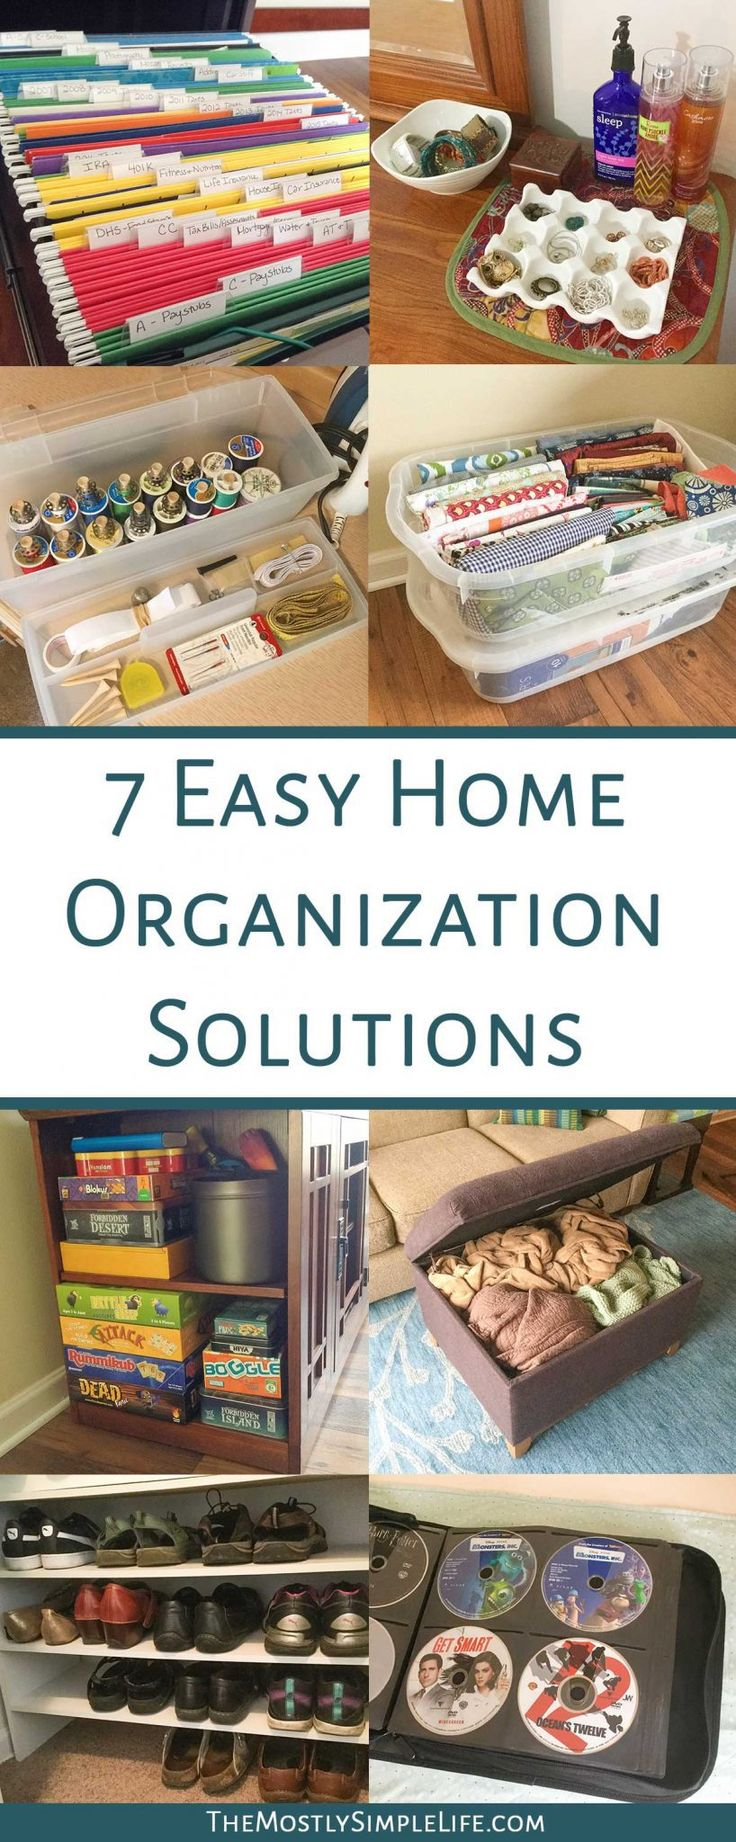 7 Home Organization Solutions